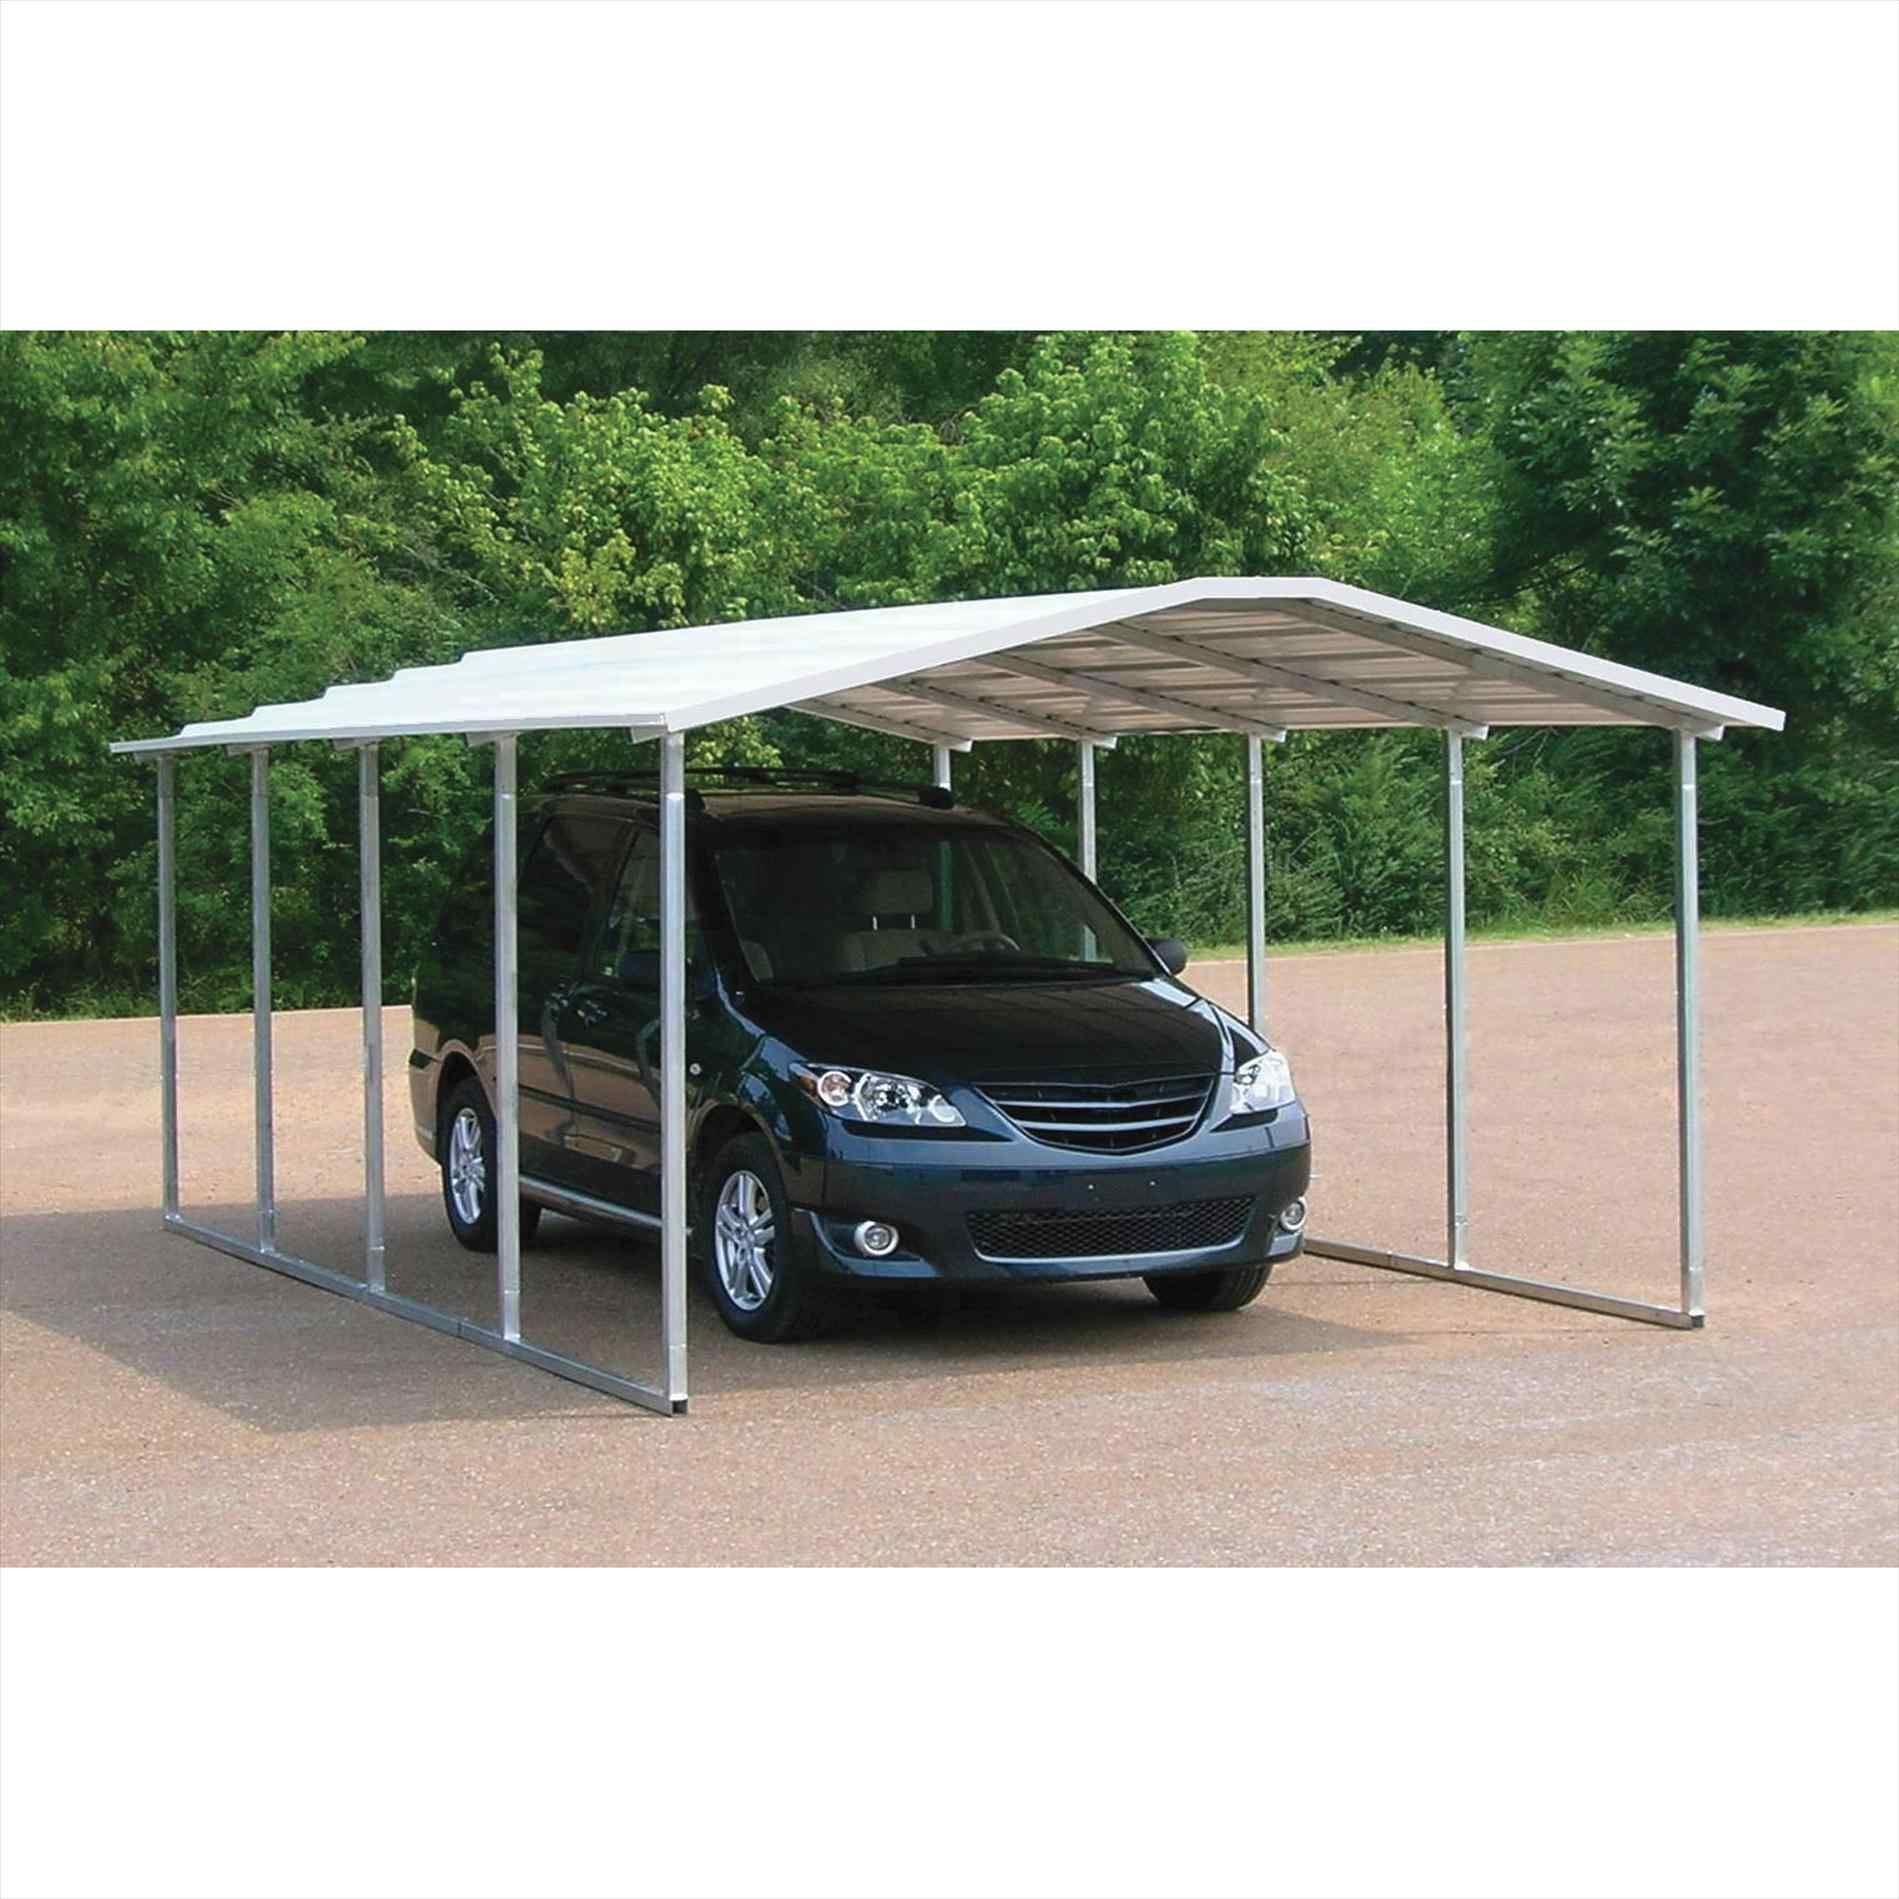 Carport Roof Design Home Roof Ideas Metal Carports Roof Design Steel Carports